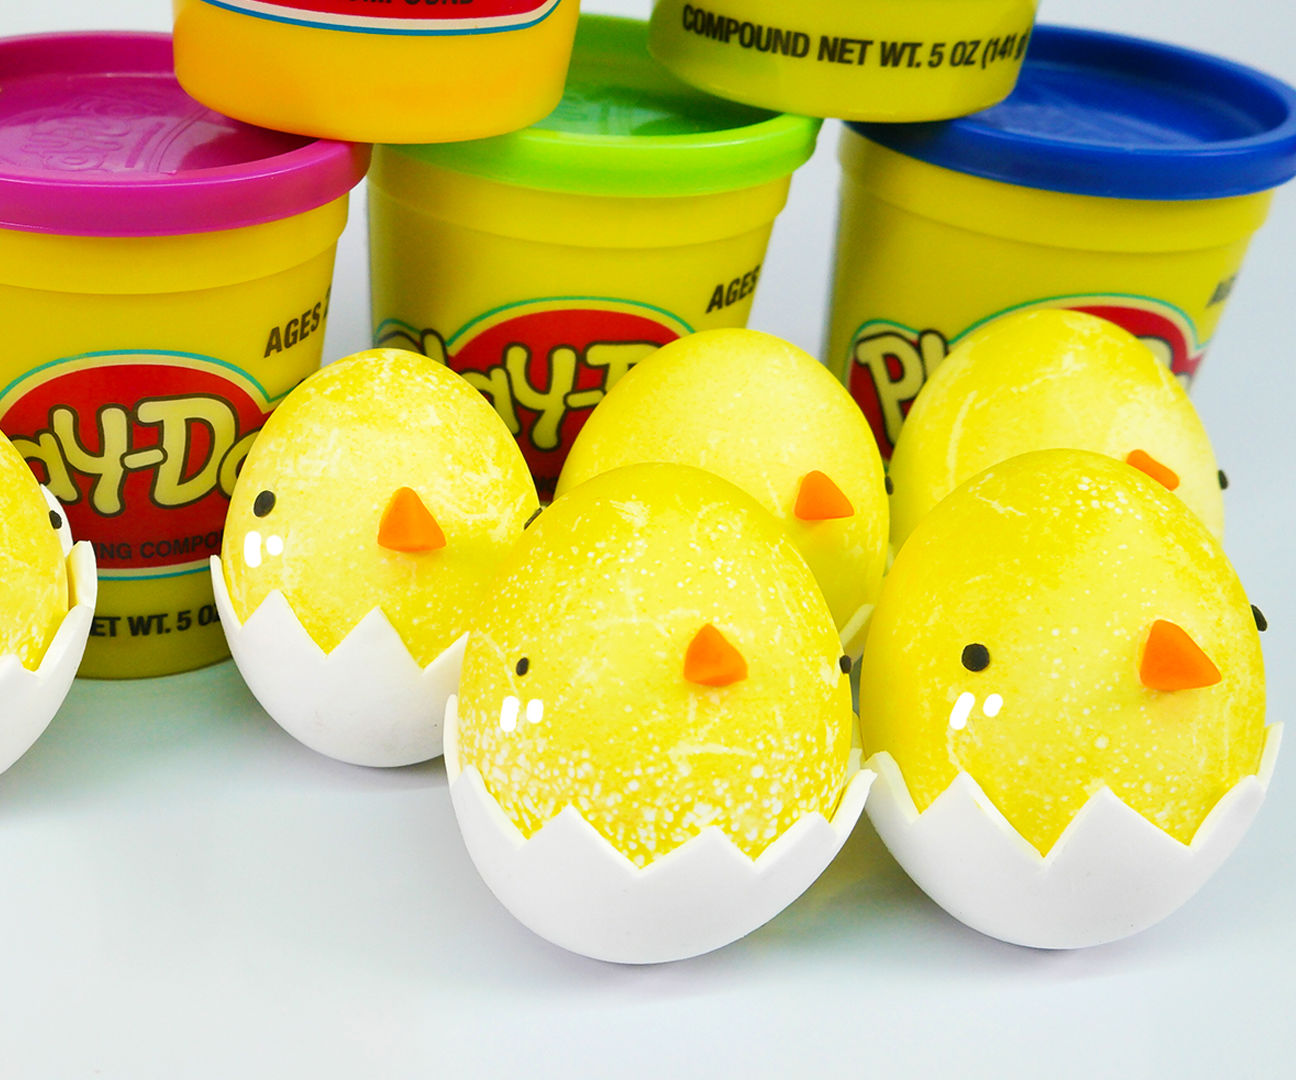 How to Make Edible Coloring Chick Easter Eggs - Play Doh + Clay